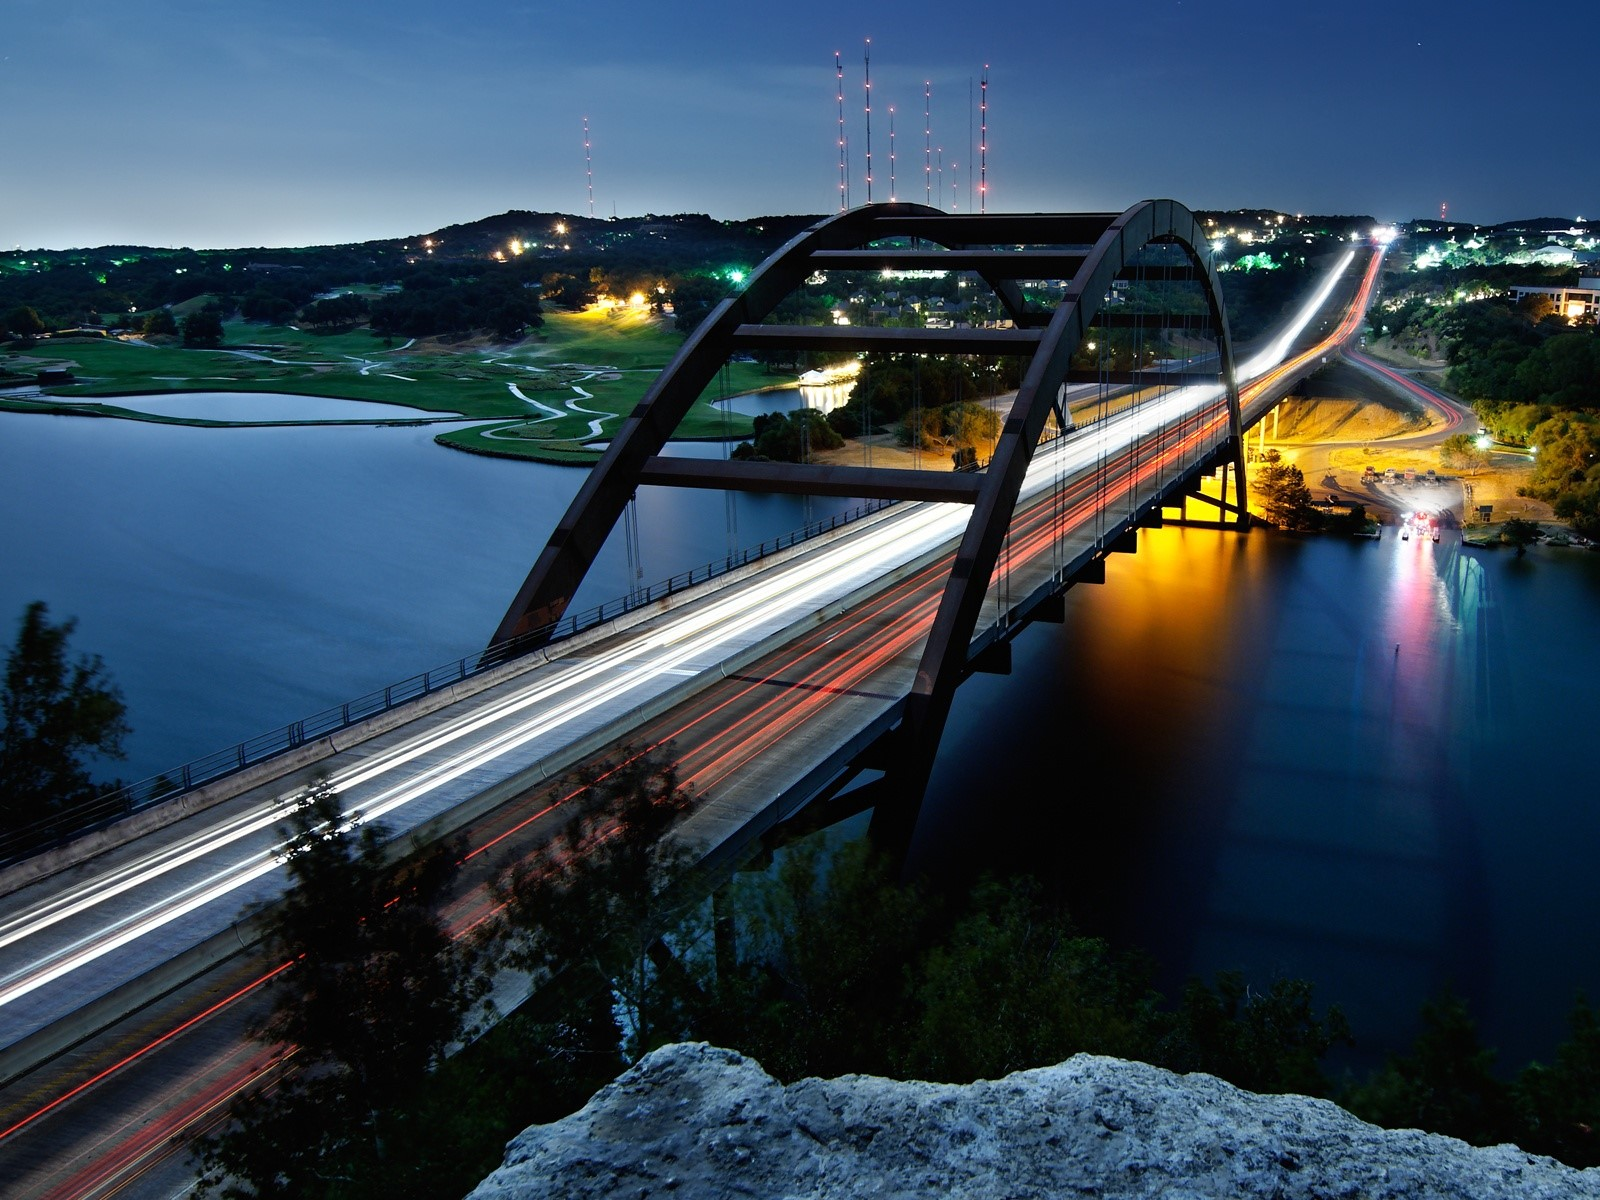 Wallpaper Puente Pennybacker Images